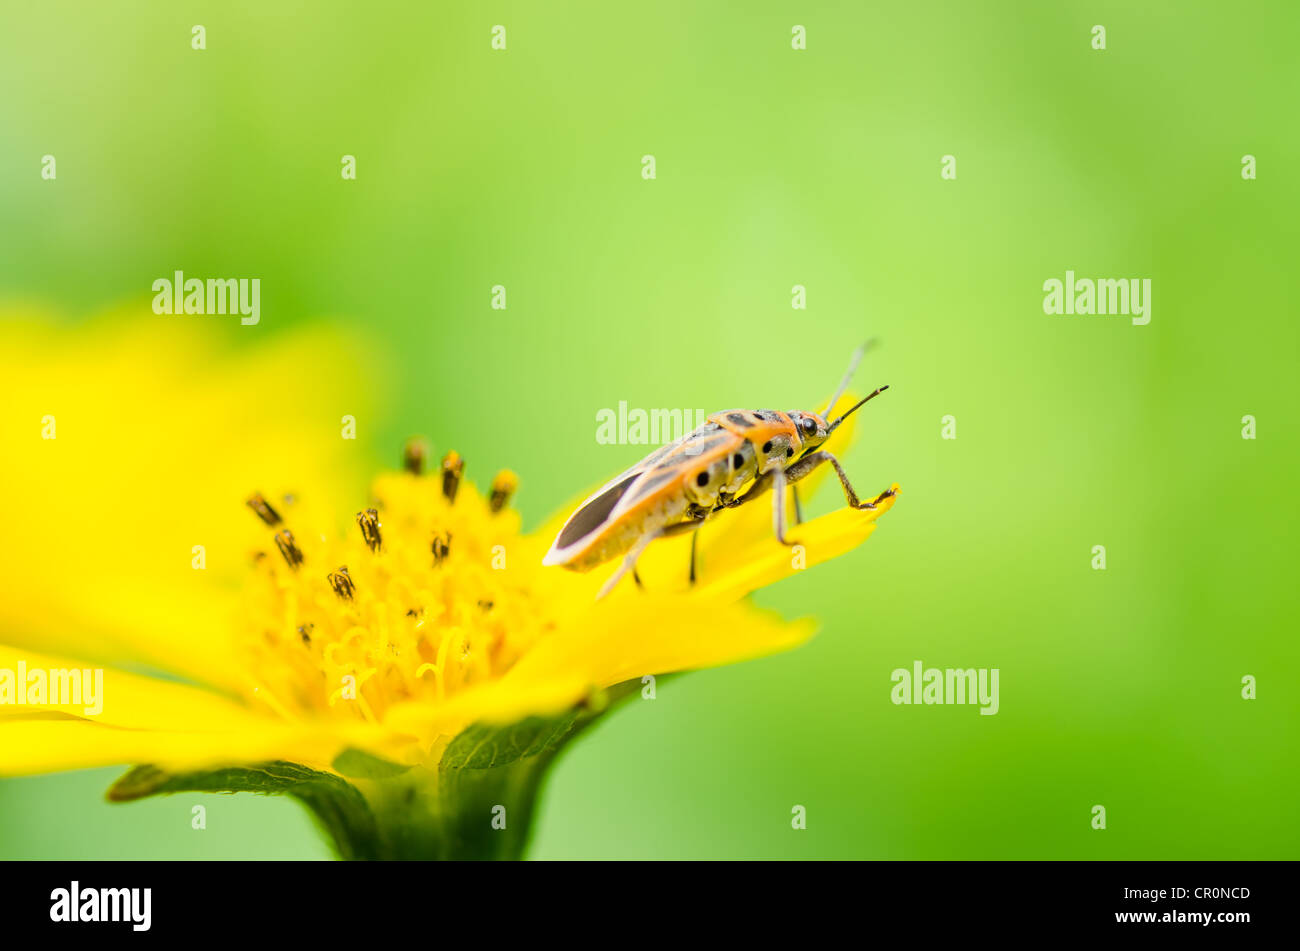 red bug or Hemiptera in the nature - Stock Image